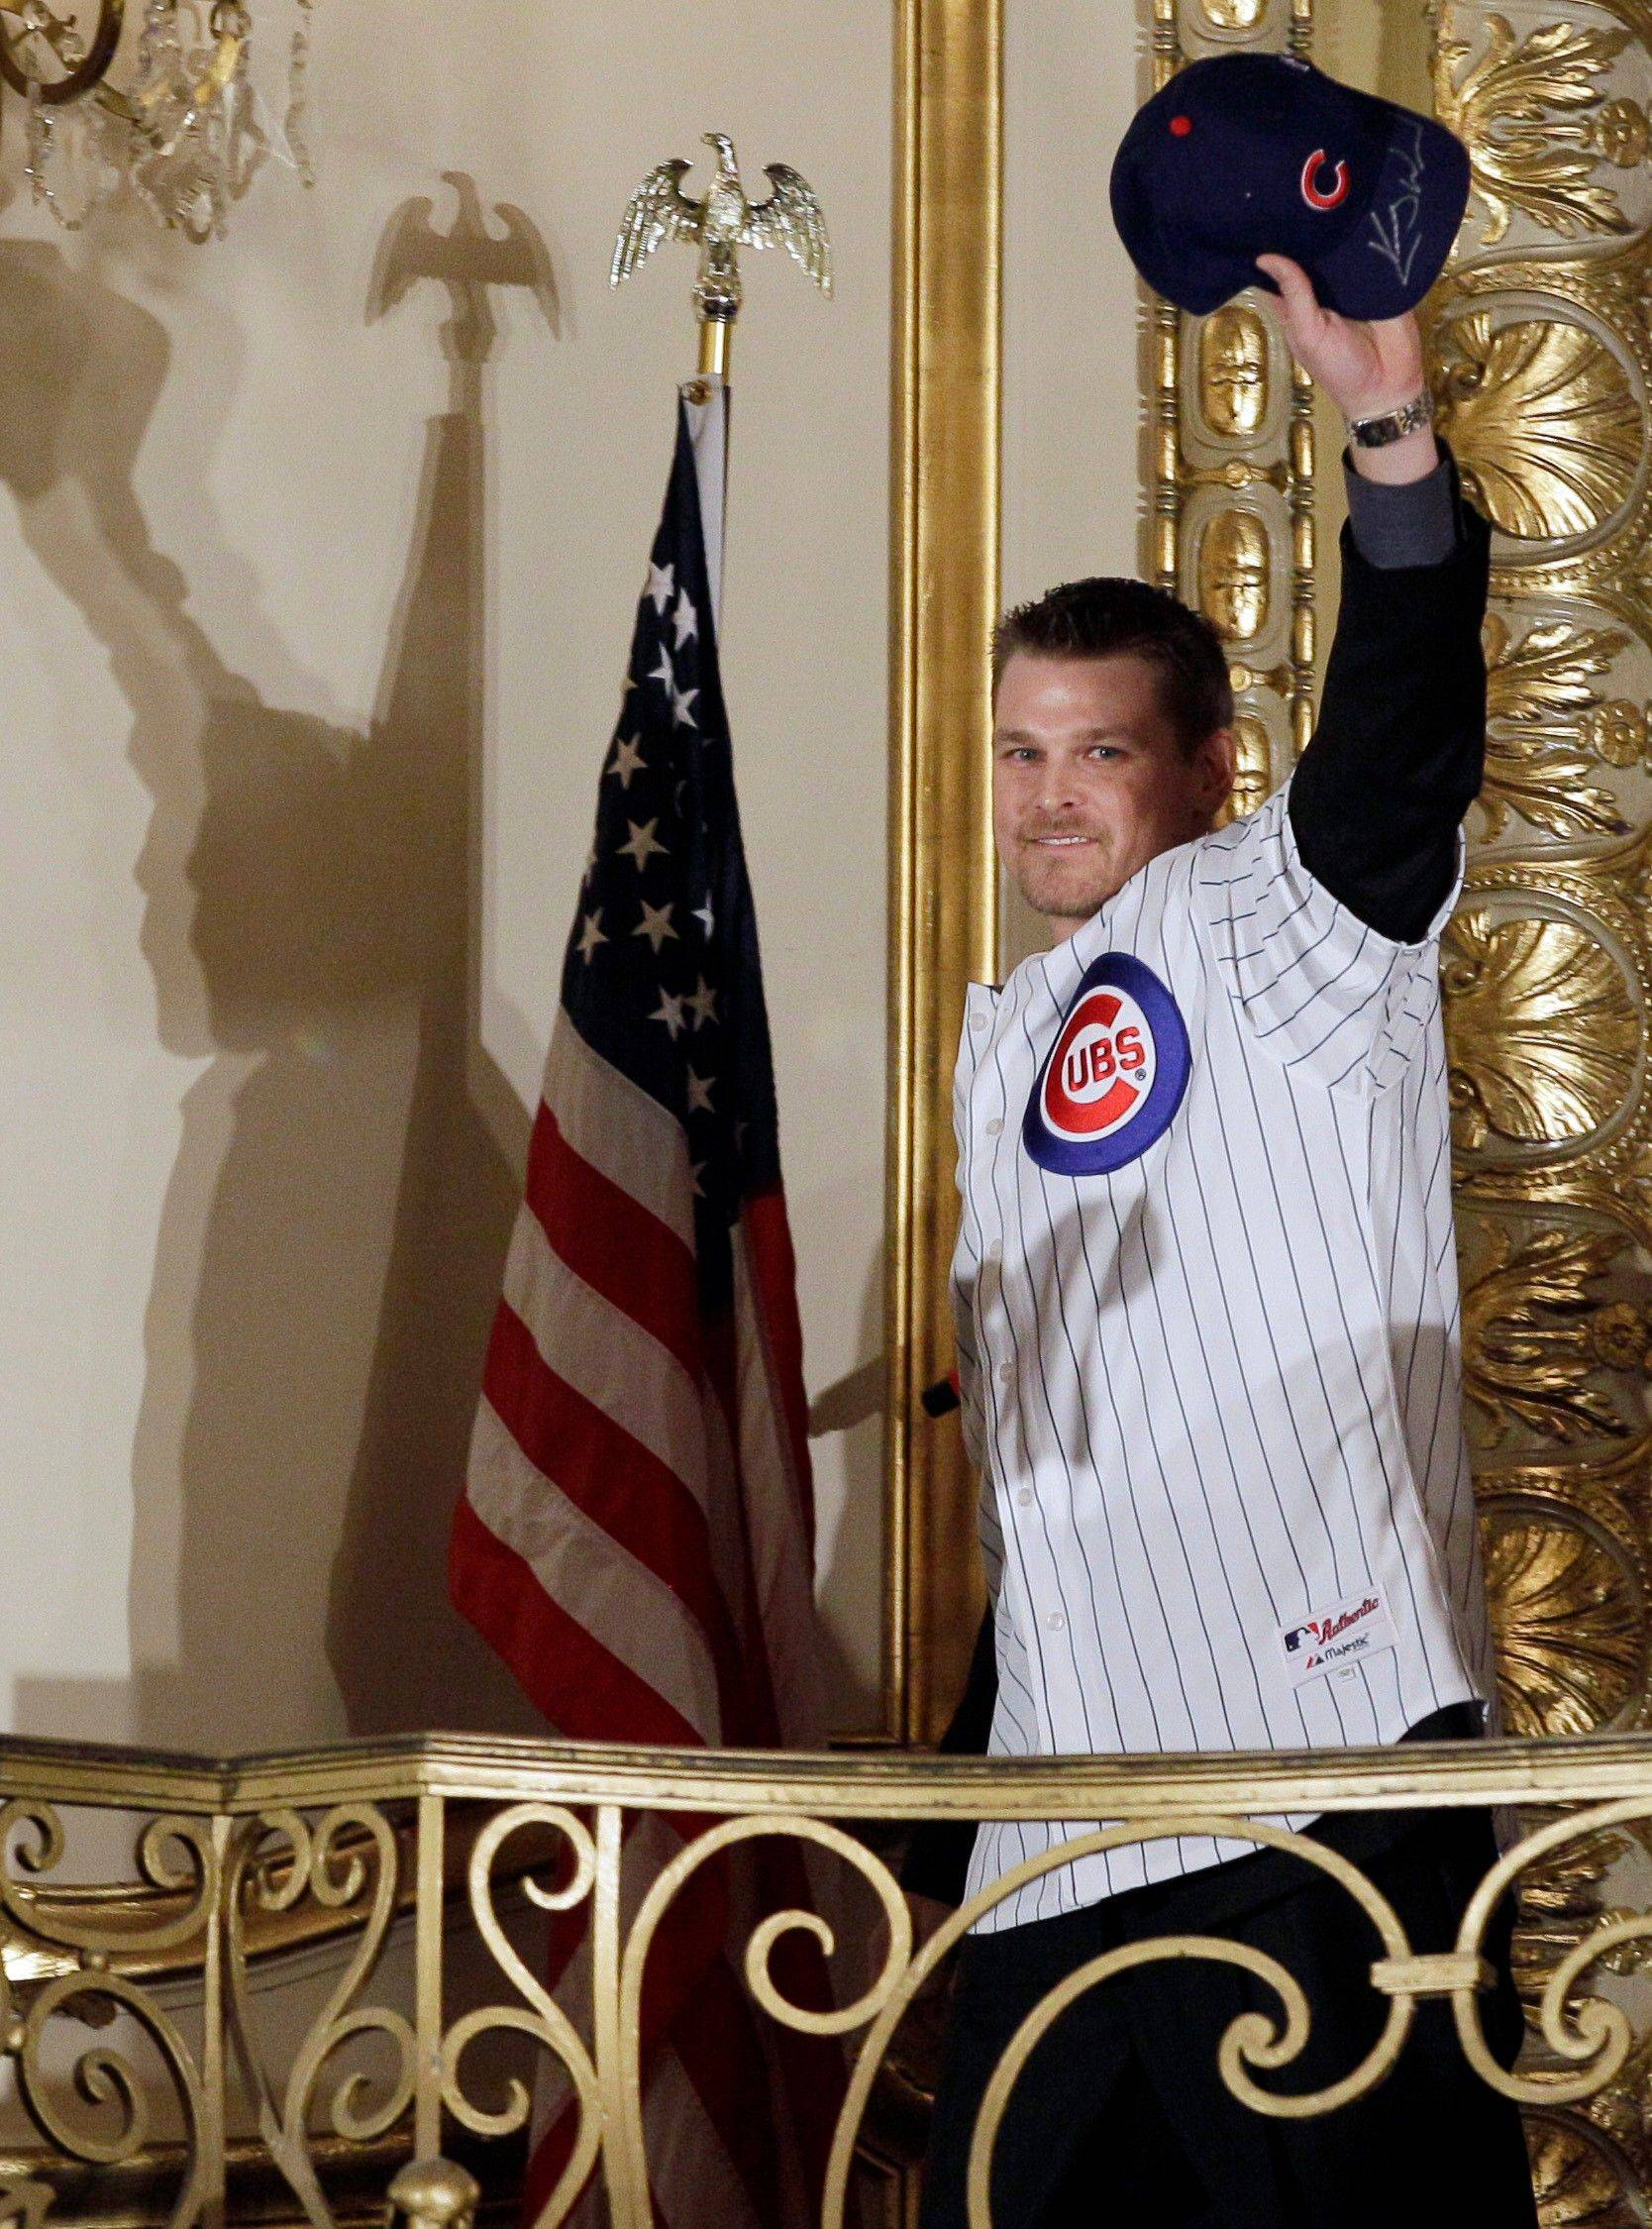 Kerry Wood waves to fans during player introductions at the 27th Annual Cubs Convention in Chicago on Friday. Wood signed a one-year deal worth $3 million to return to the North Side next season.